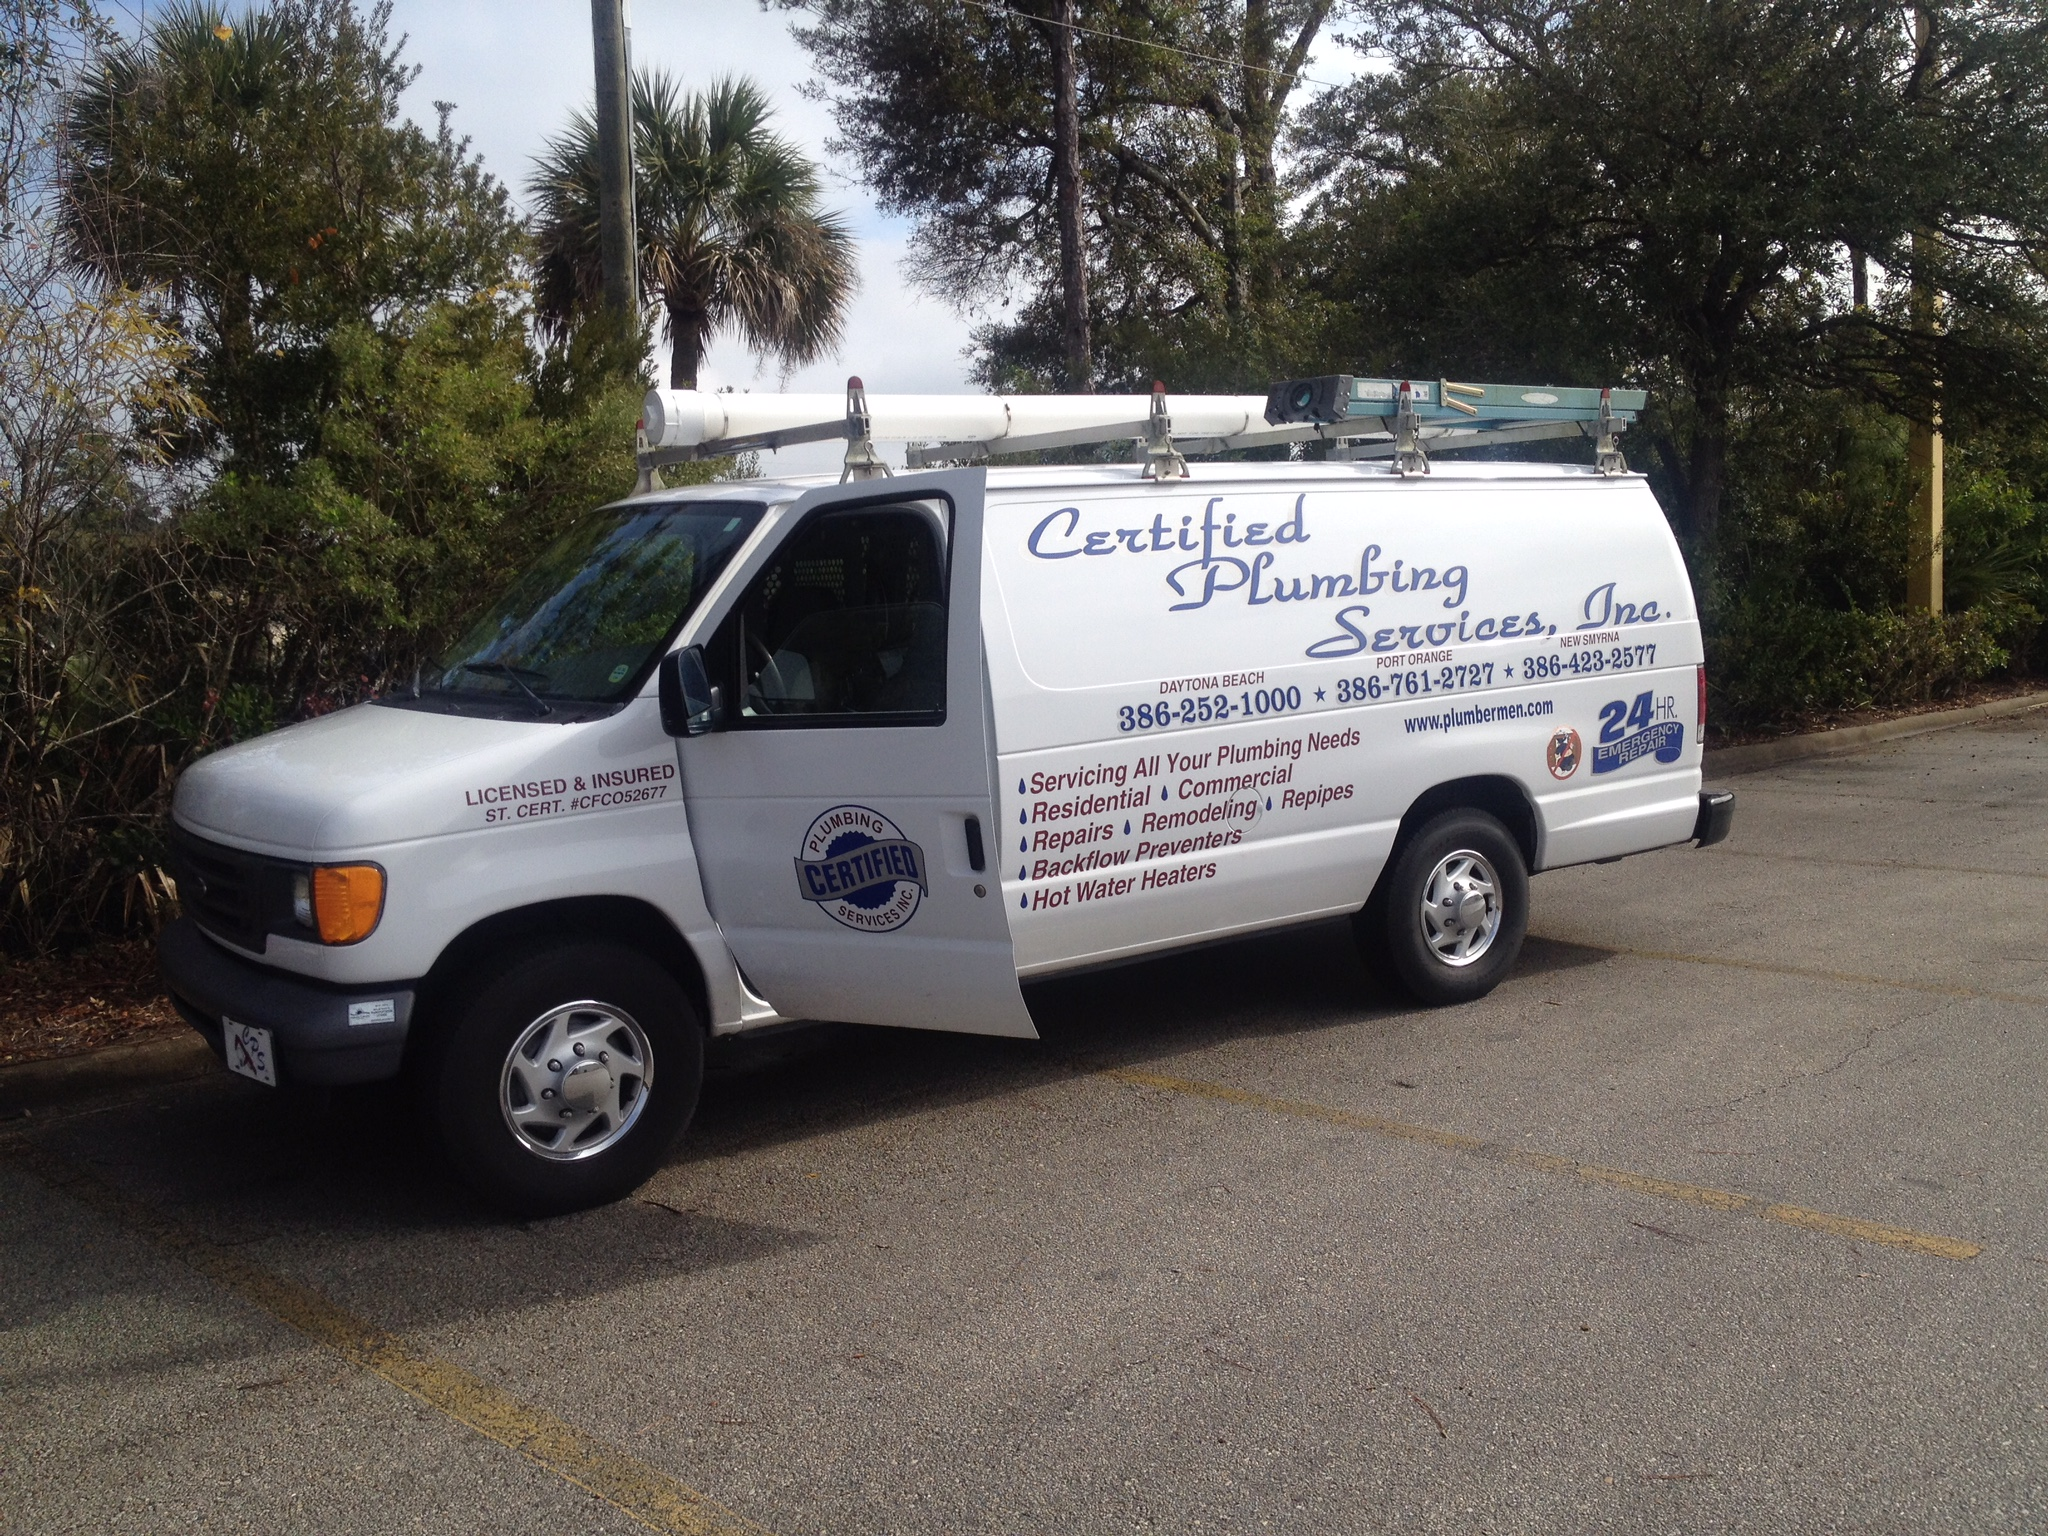 Certified Plumbing Services Inc image 2